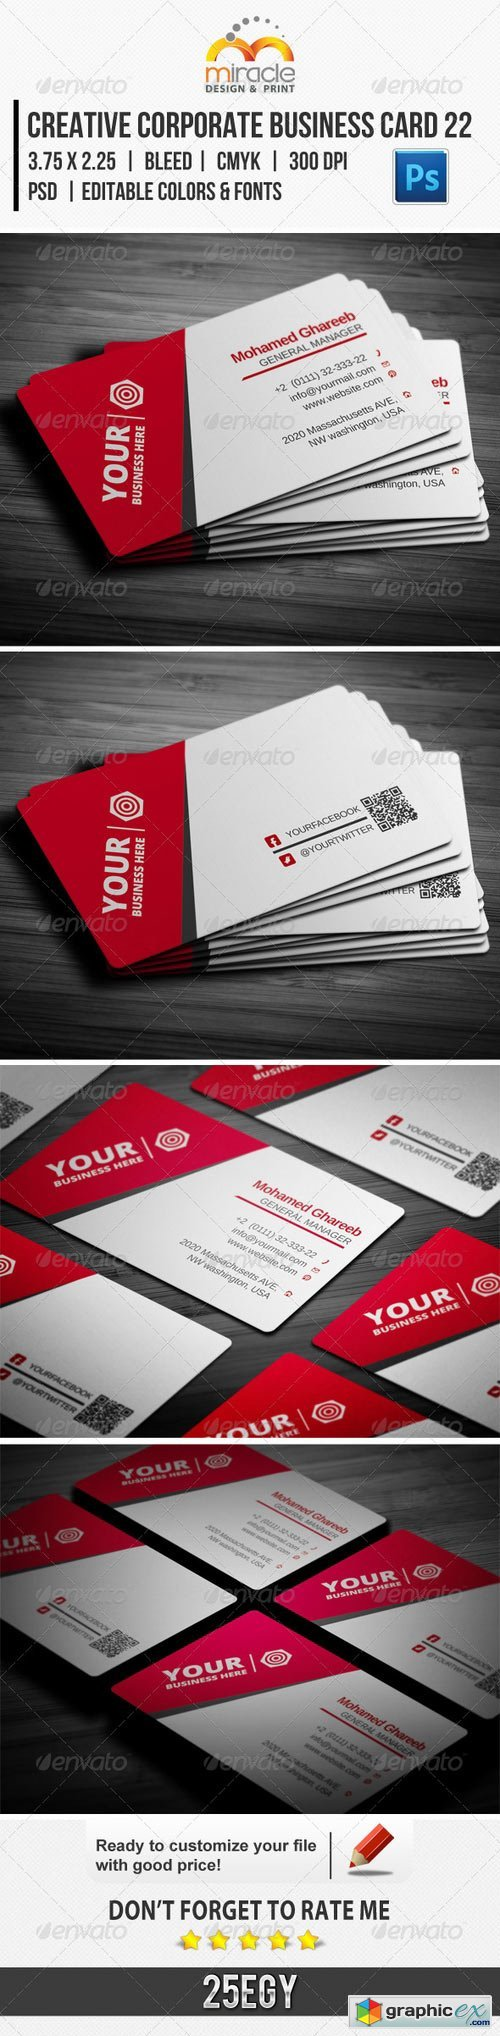 Creative Corporate Business Card 22